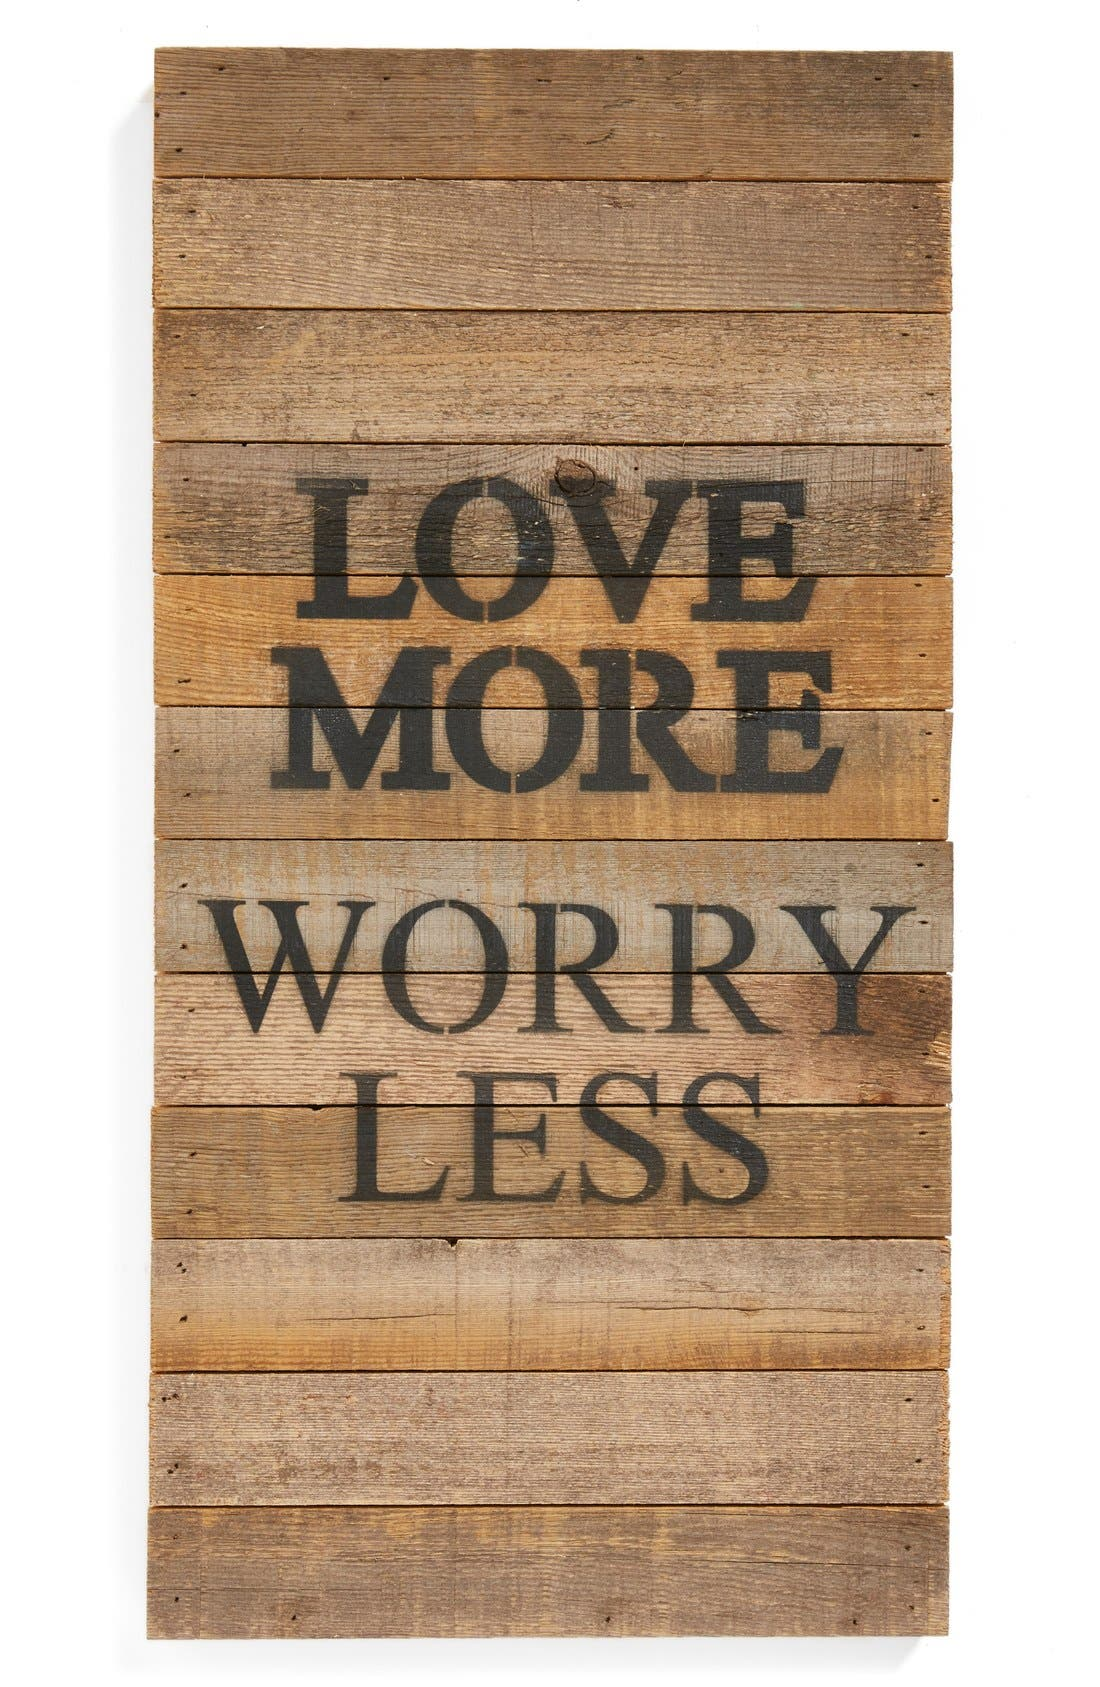 Alternate Image 1 Selected - Second Nature by Hand 'Love More Worry Less' Repurposed Wood Wall Art